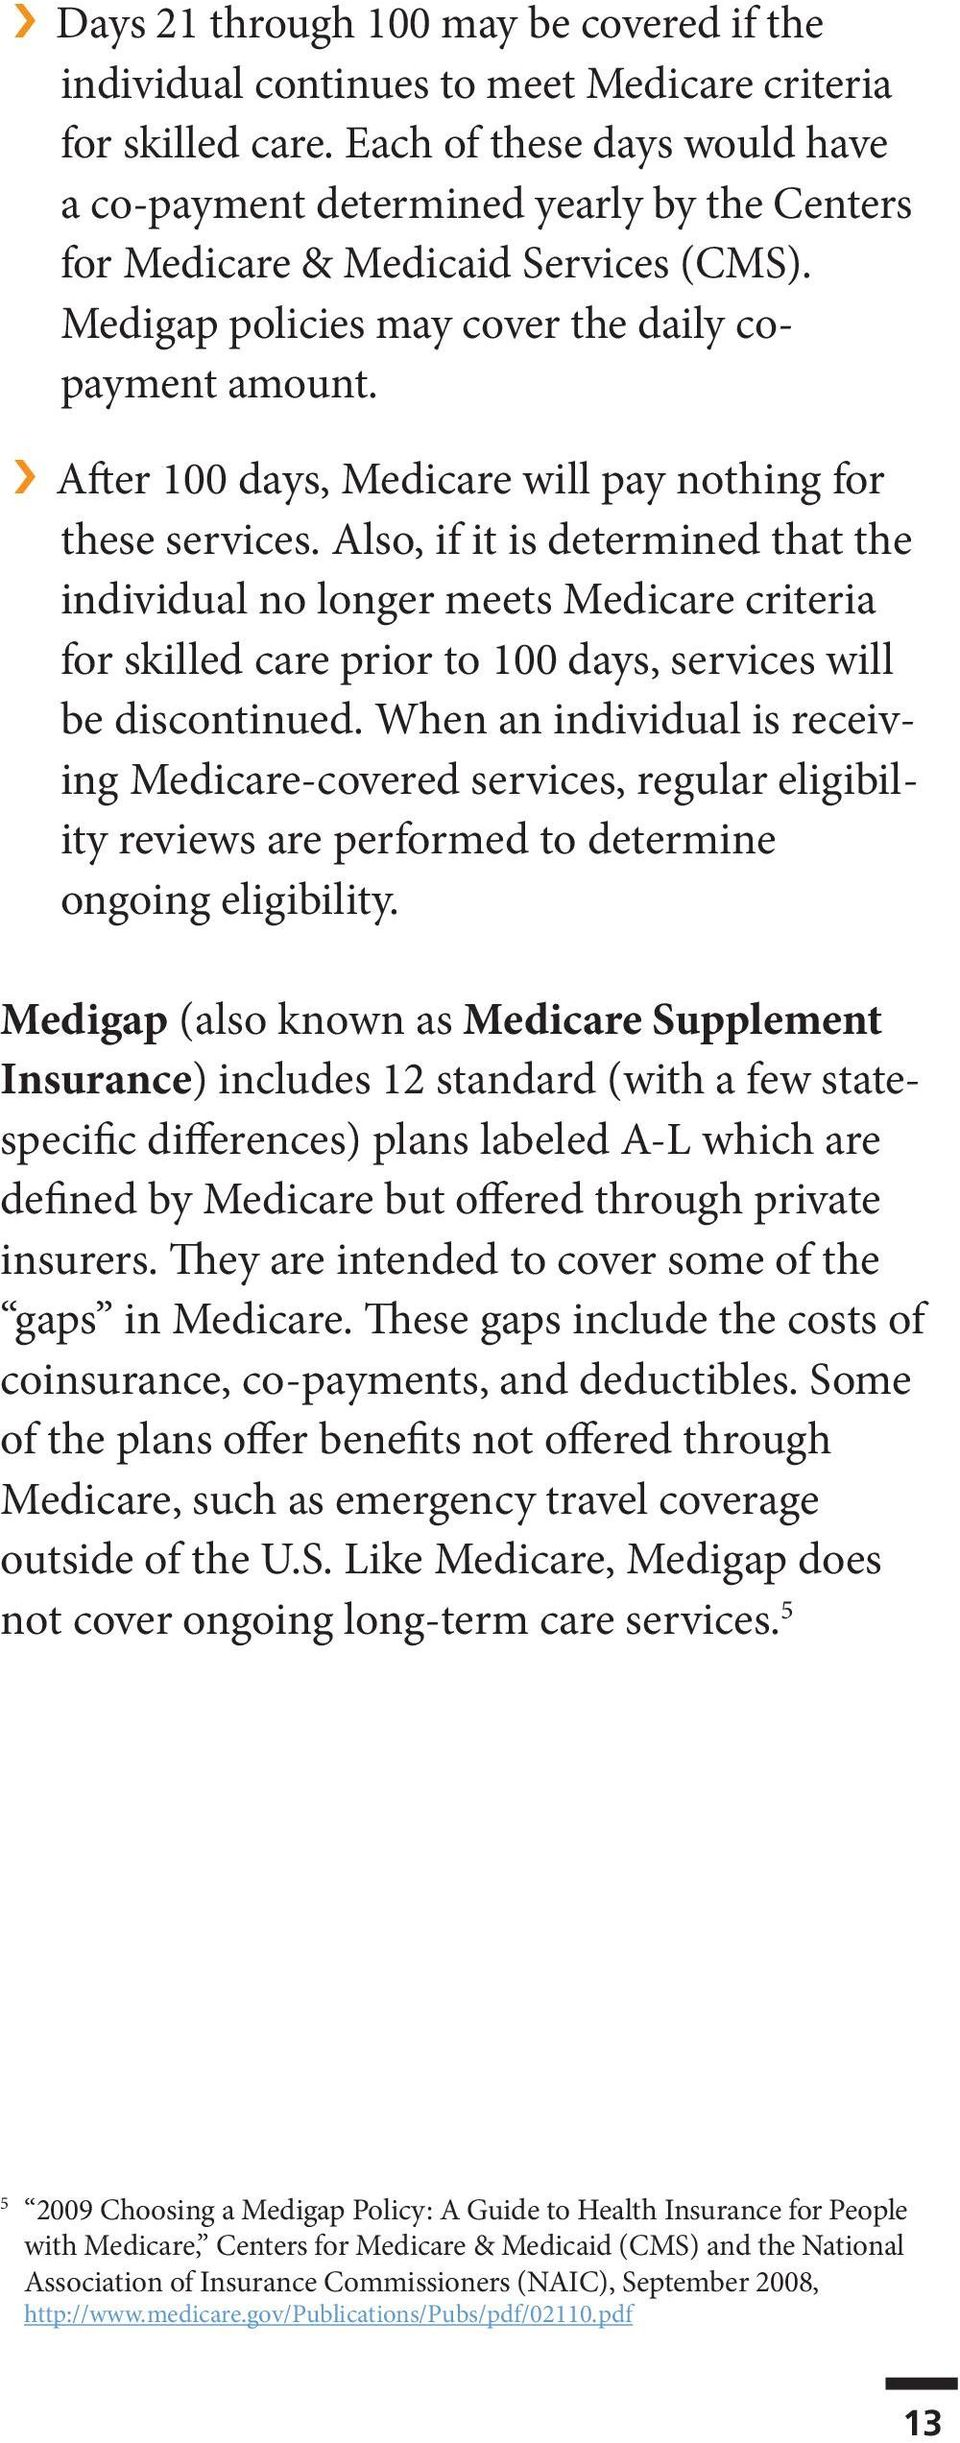 After 100 days, Medicare will pay nothing for these services.